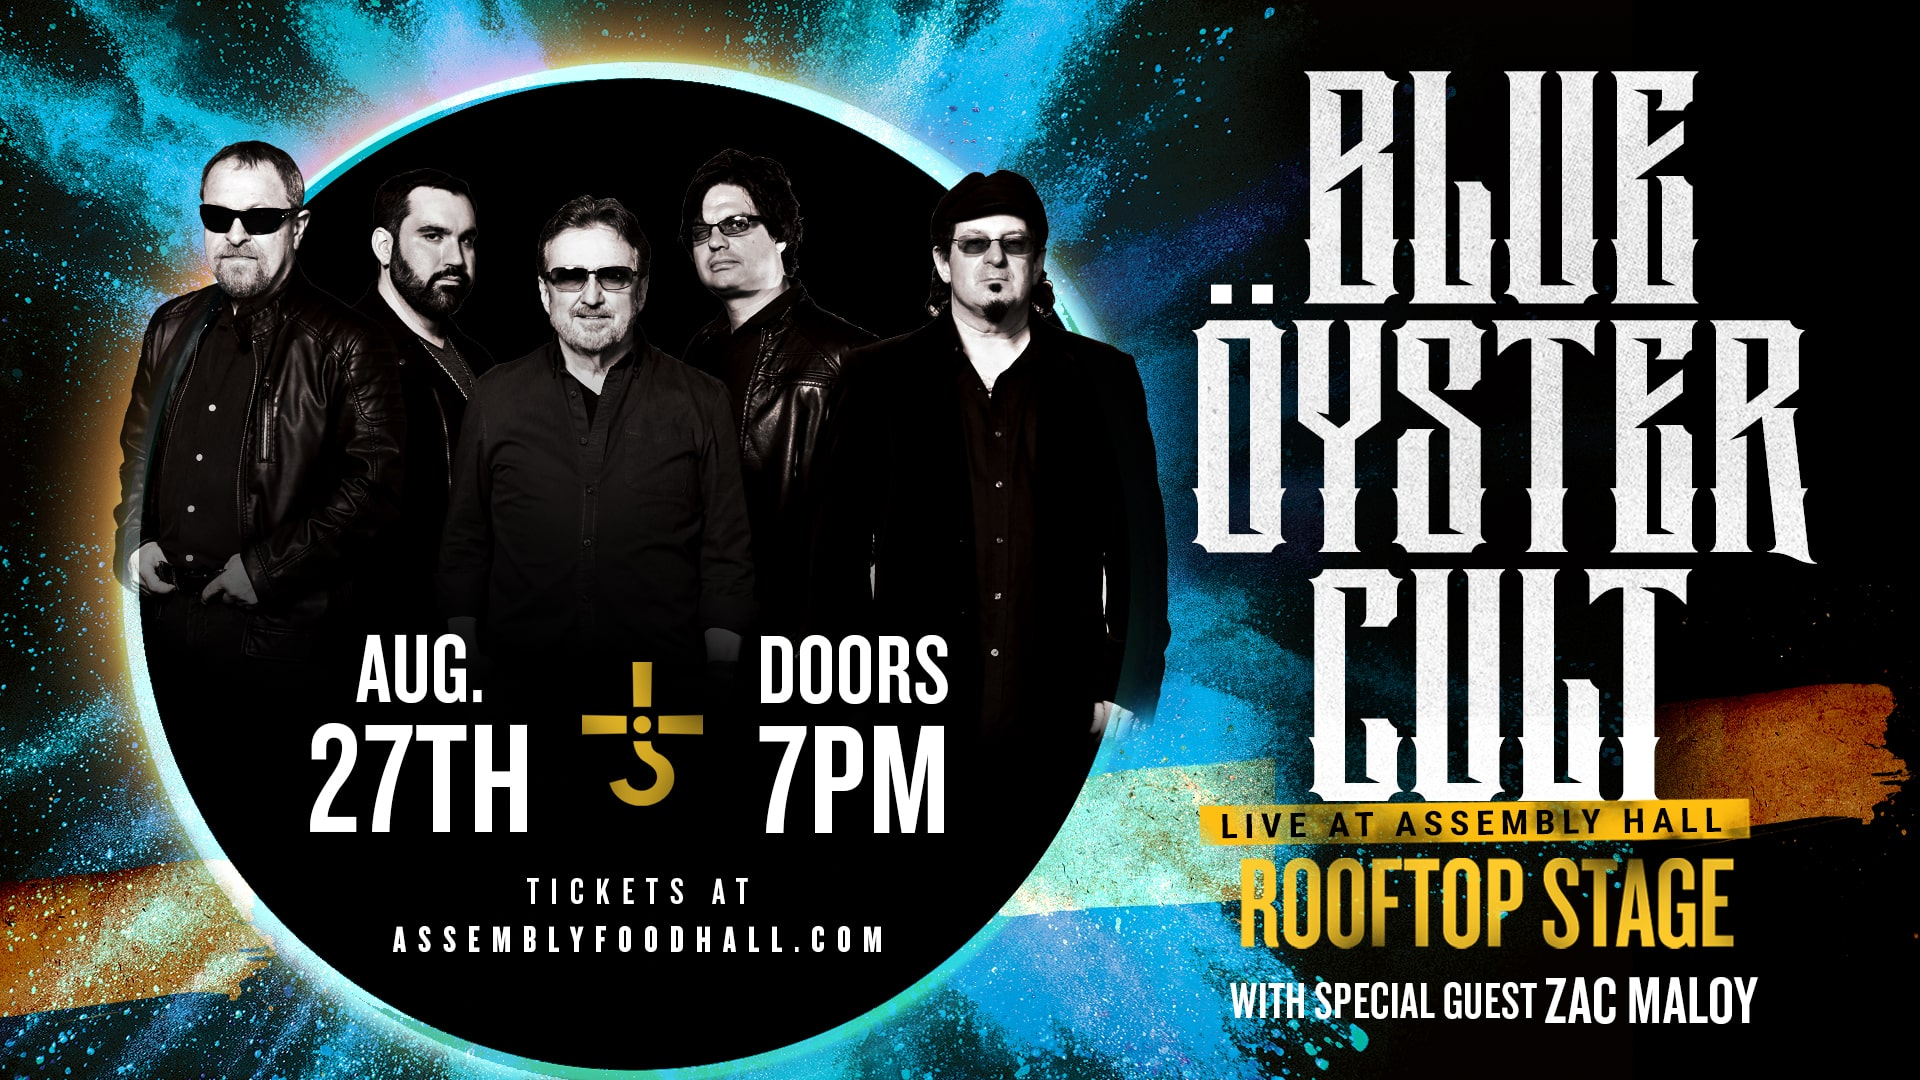 Promo image of Blue Oyster Cult on the Rooftop